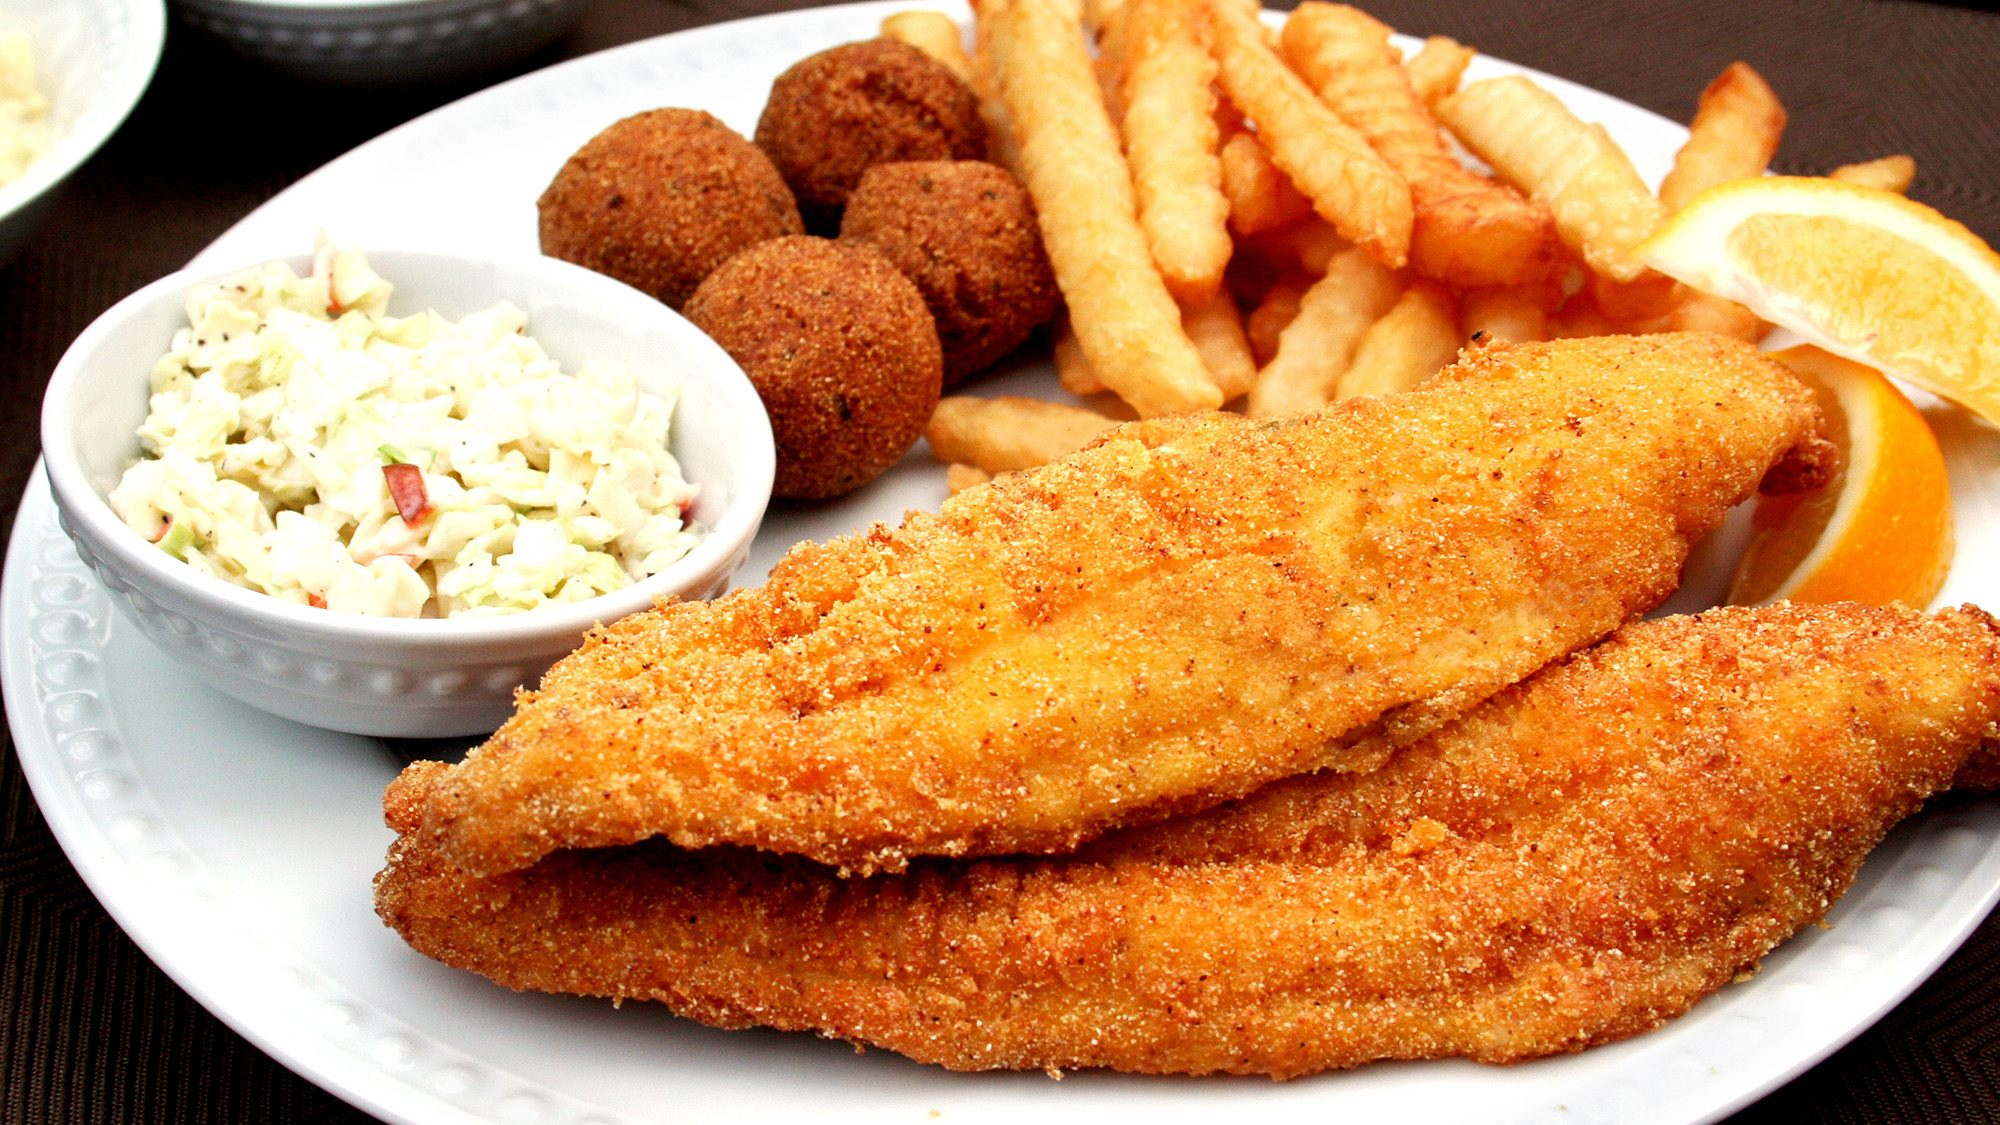 Zatarain's Creole Mustard Battered Fish